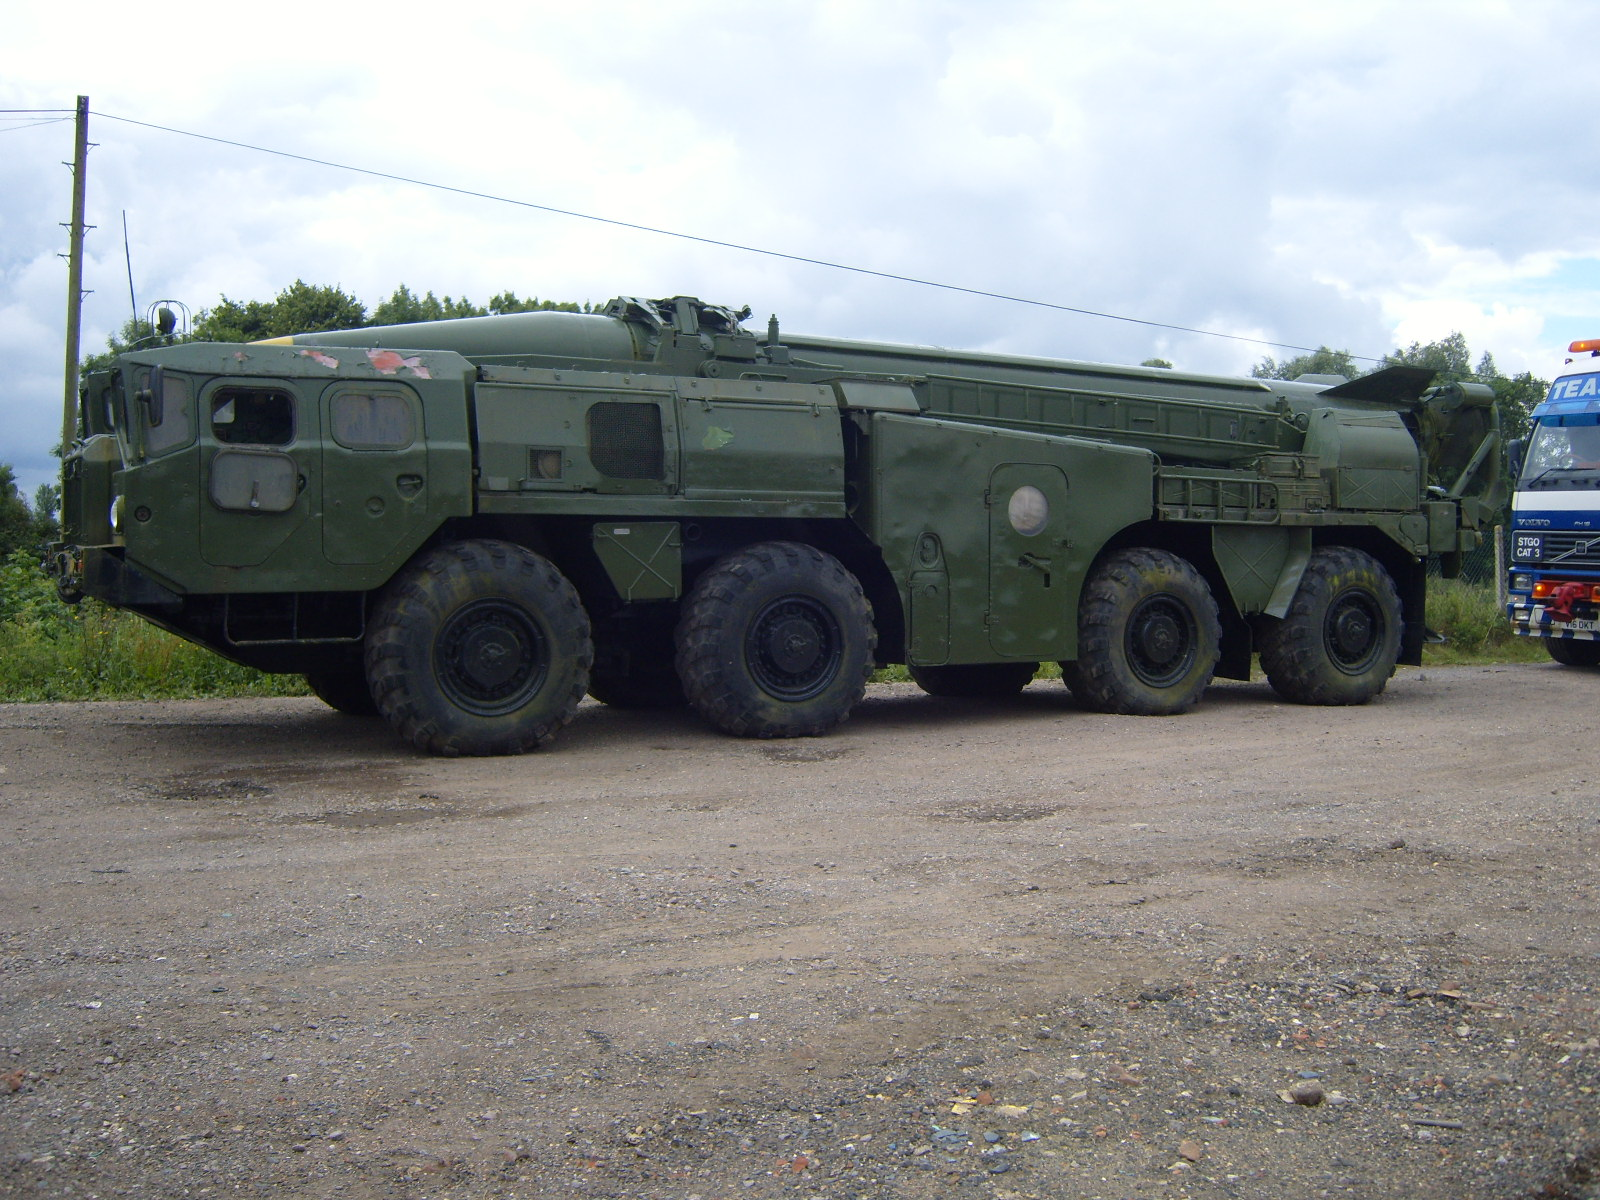 Military Vehicles For Sale >> Catman S Litterbox Sources For Surplus Military Vehicles Including